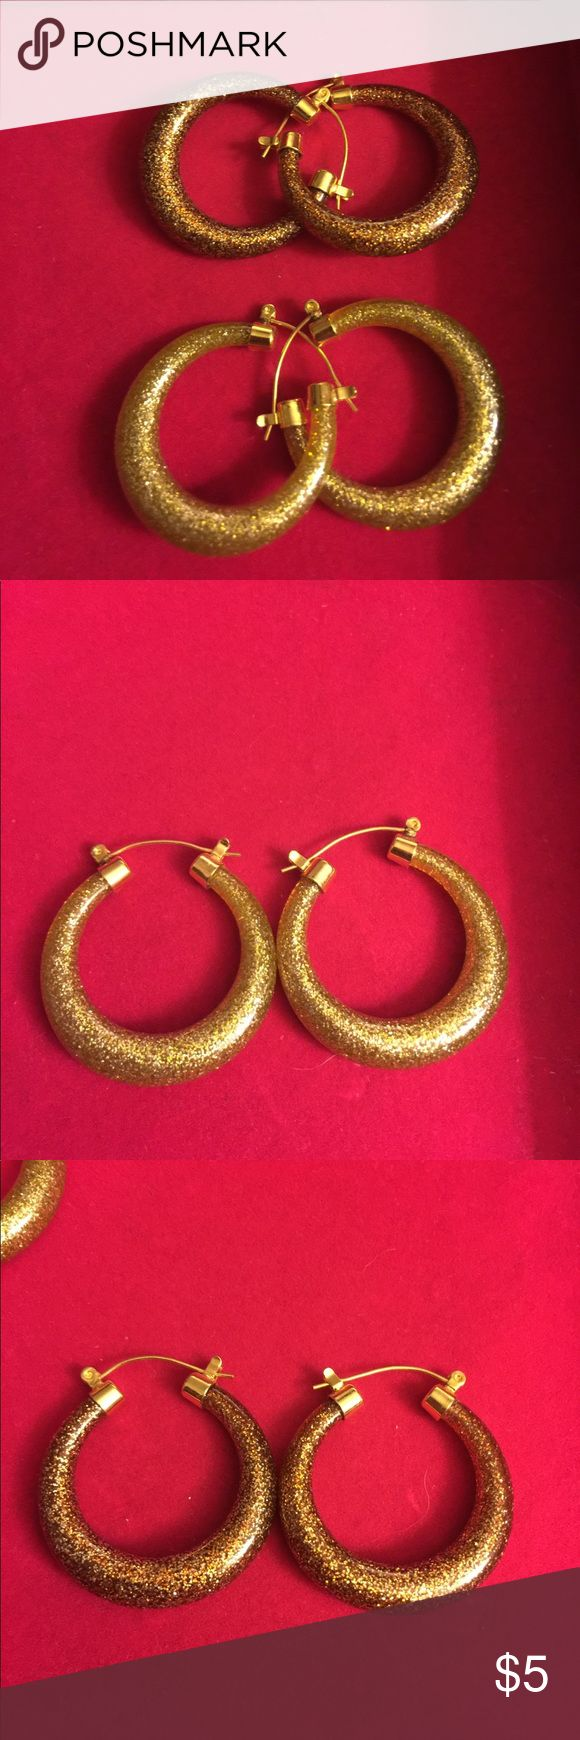 """Hoop earrings by Joan Rivers Hoop earrings by Joan Rivers. I had posted prior and had a buyer but I misplaced them and lost the sale. I found them again last night!  Made of lightweight resin. Approximately 1 1/4"""" wide. Two pair available; One pair = goldtone; one pair = copper tone.  Fashion earrings #joanriversearrings#hoopearrings Joan Rivers Jewelry Earrings"""